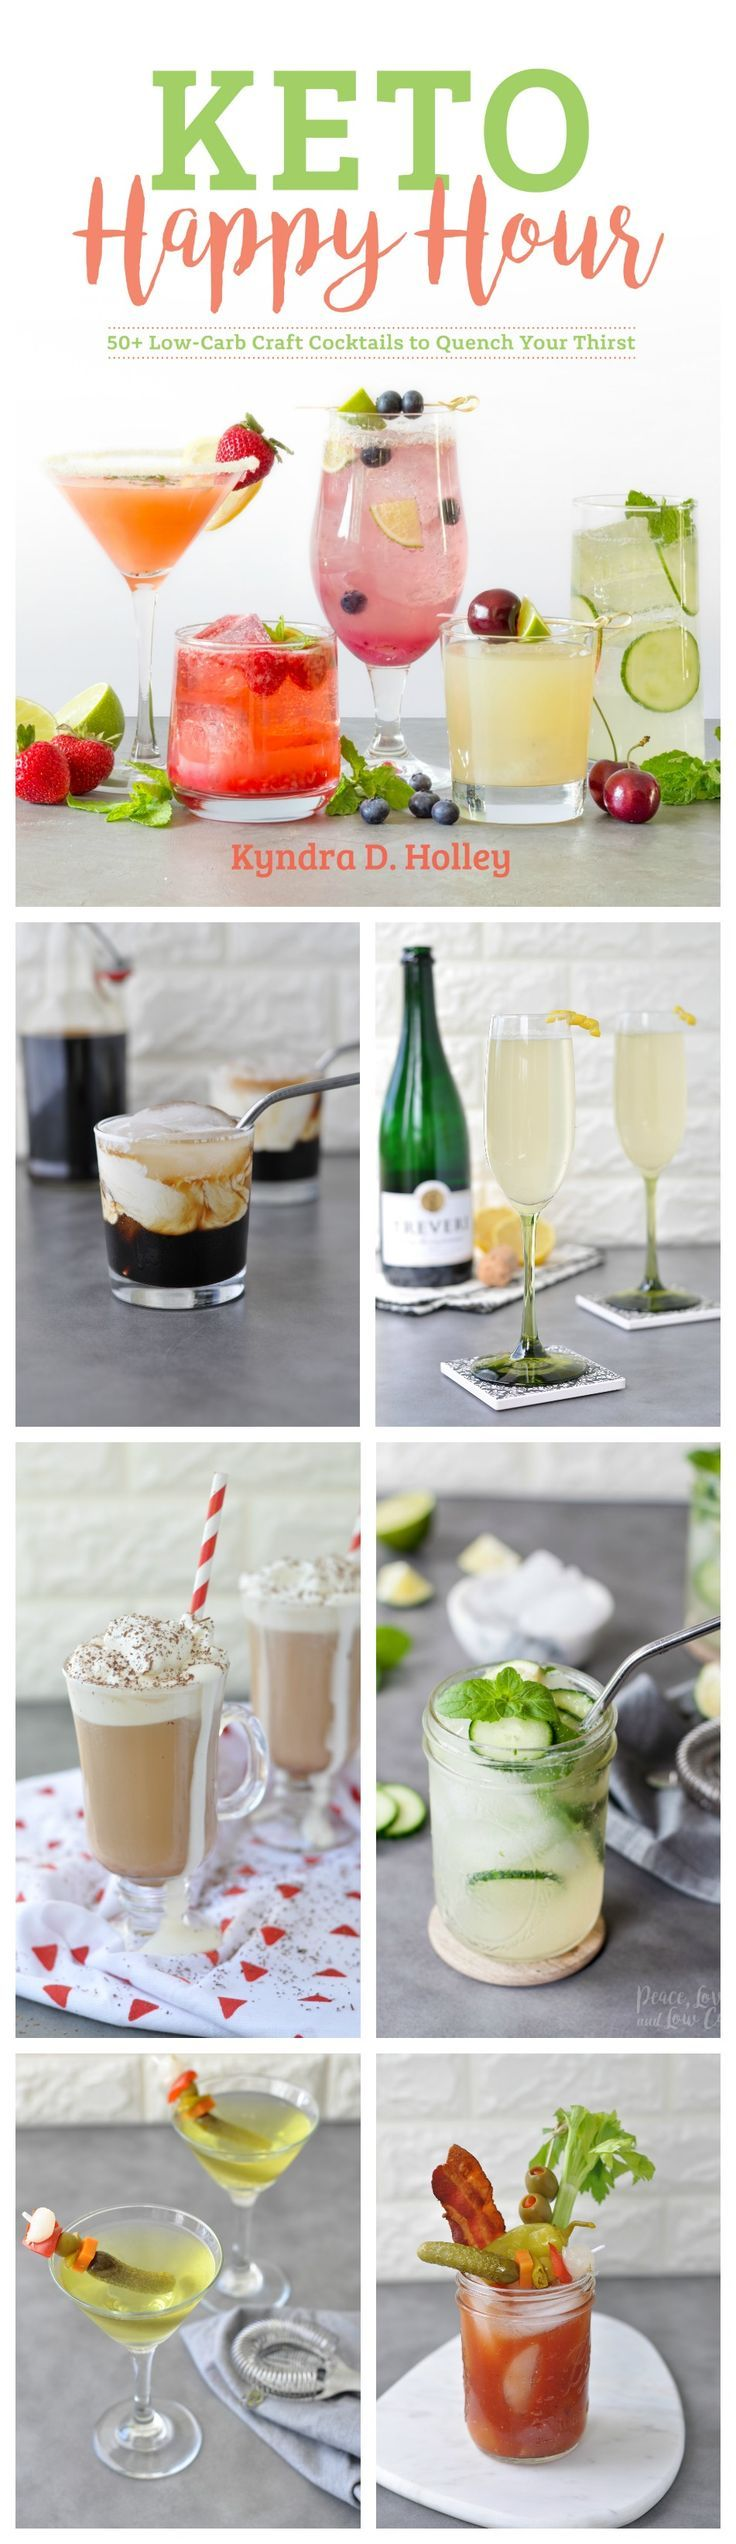 Keto Happy Hour